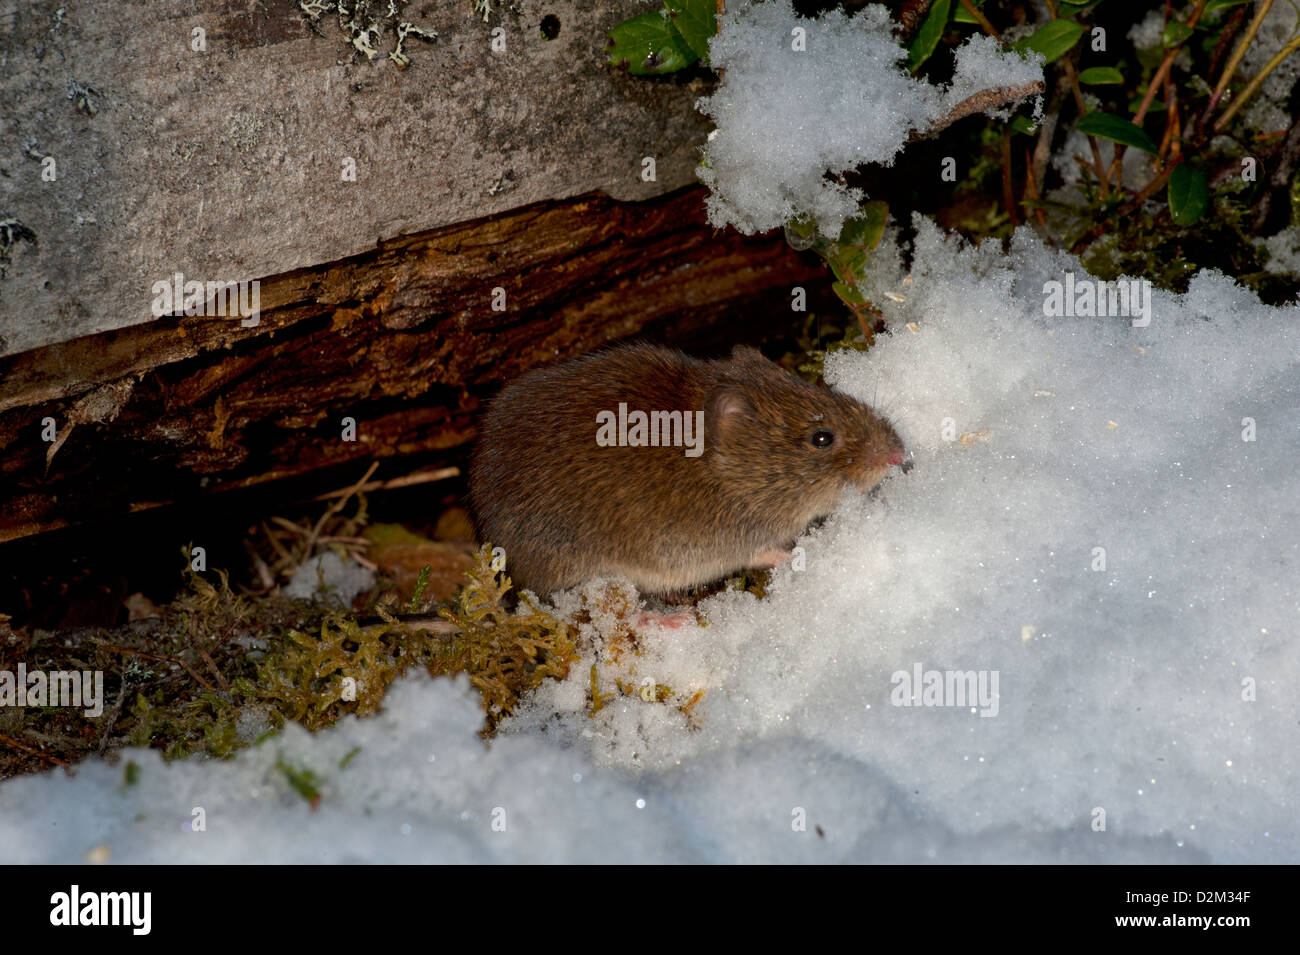 A Bank Vole in winter snow in the  ancient Scottish pine woodland. SCO 8916 - Stock Image